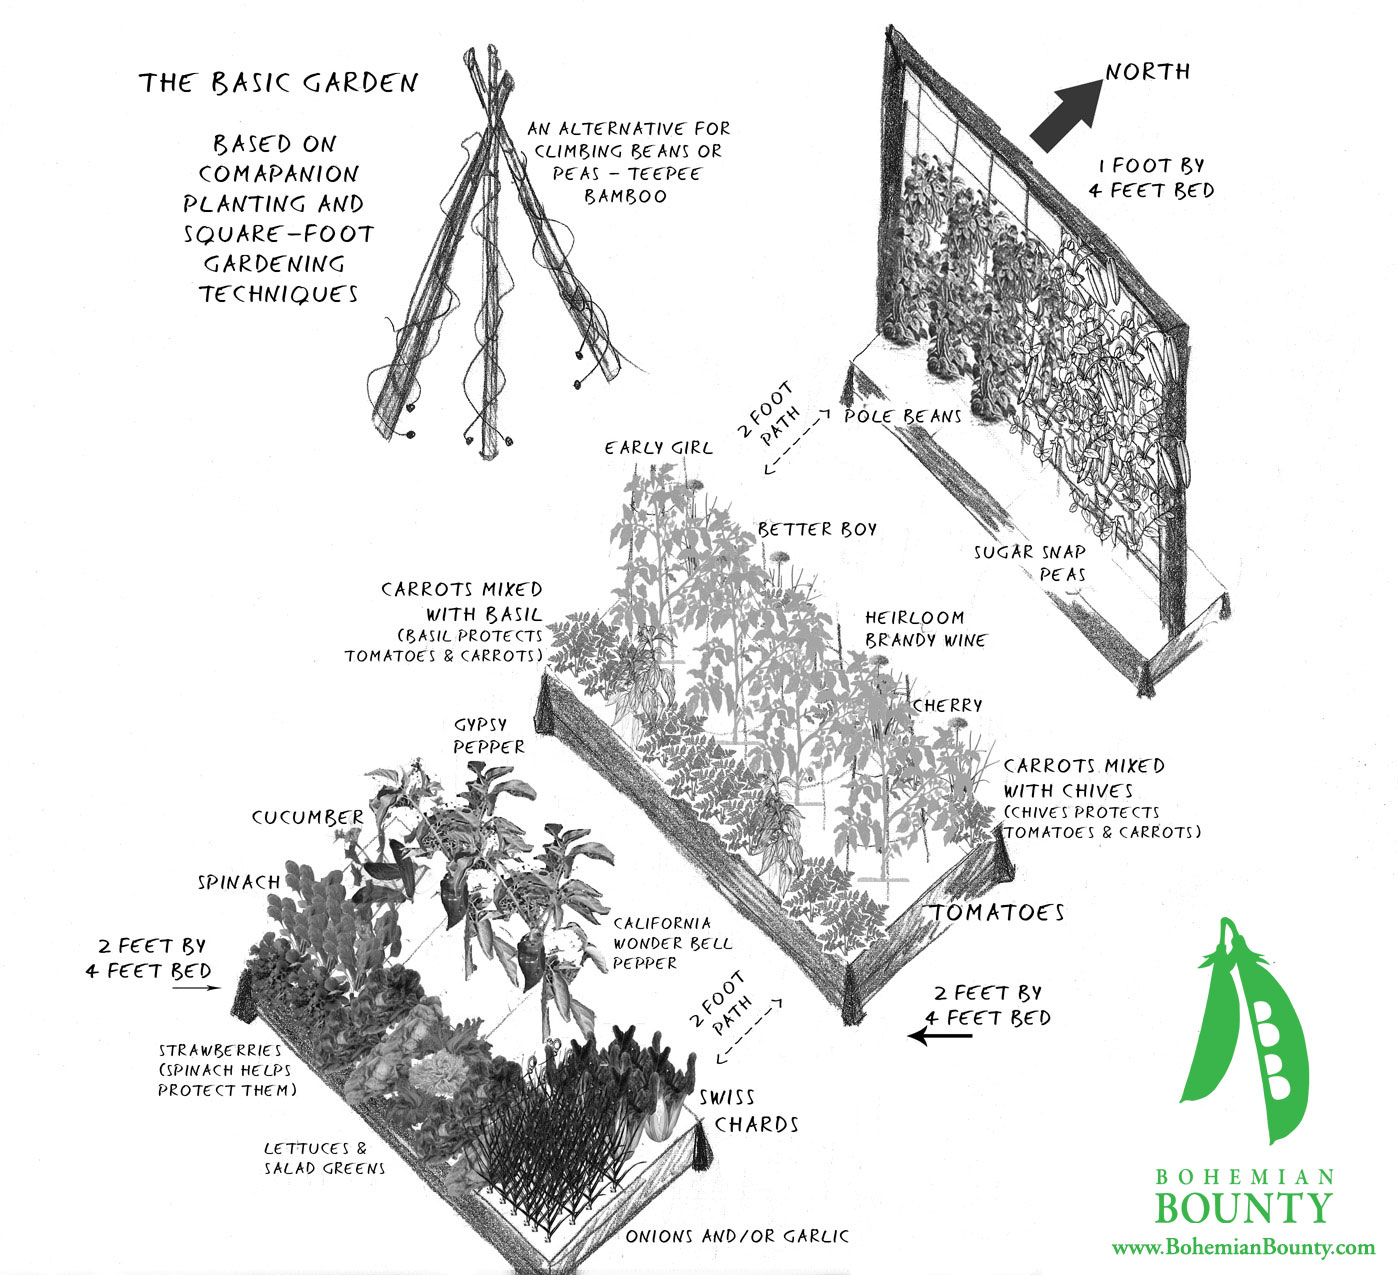 Garden designs gallery bohemian bounty for How to layout plants in a garden